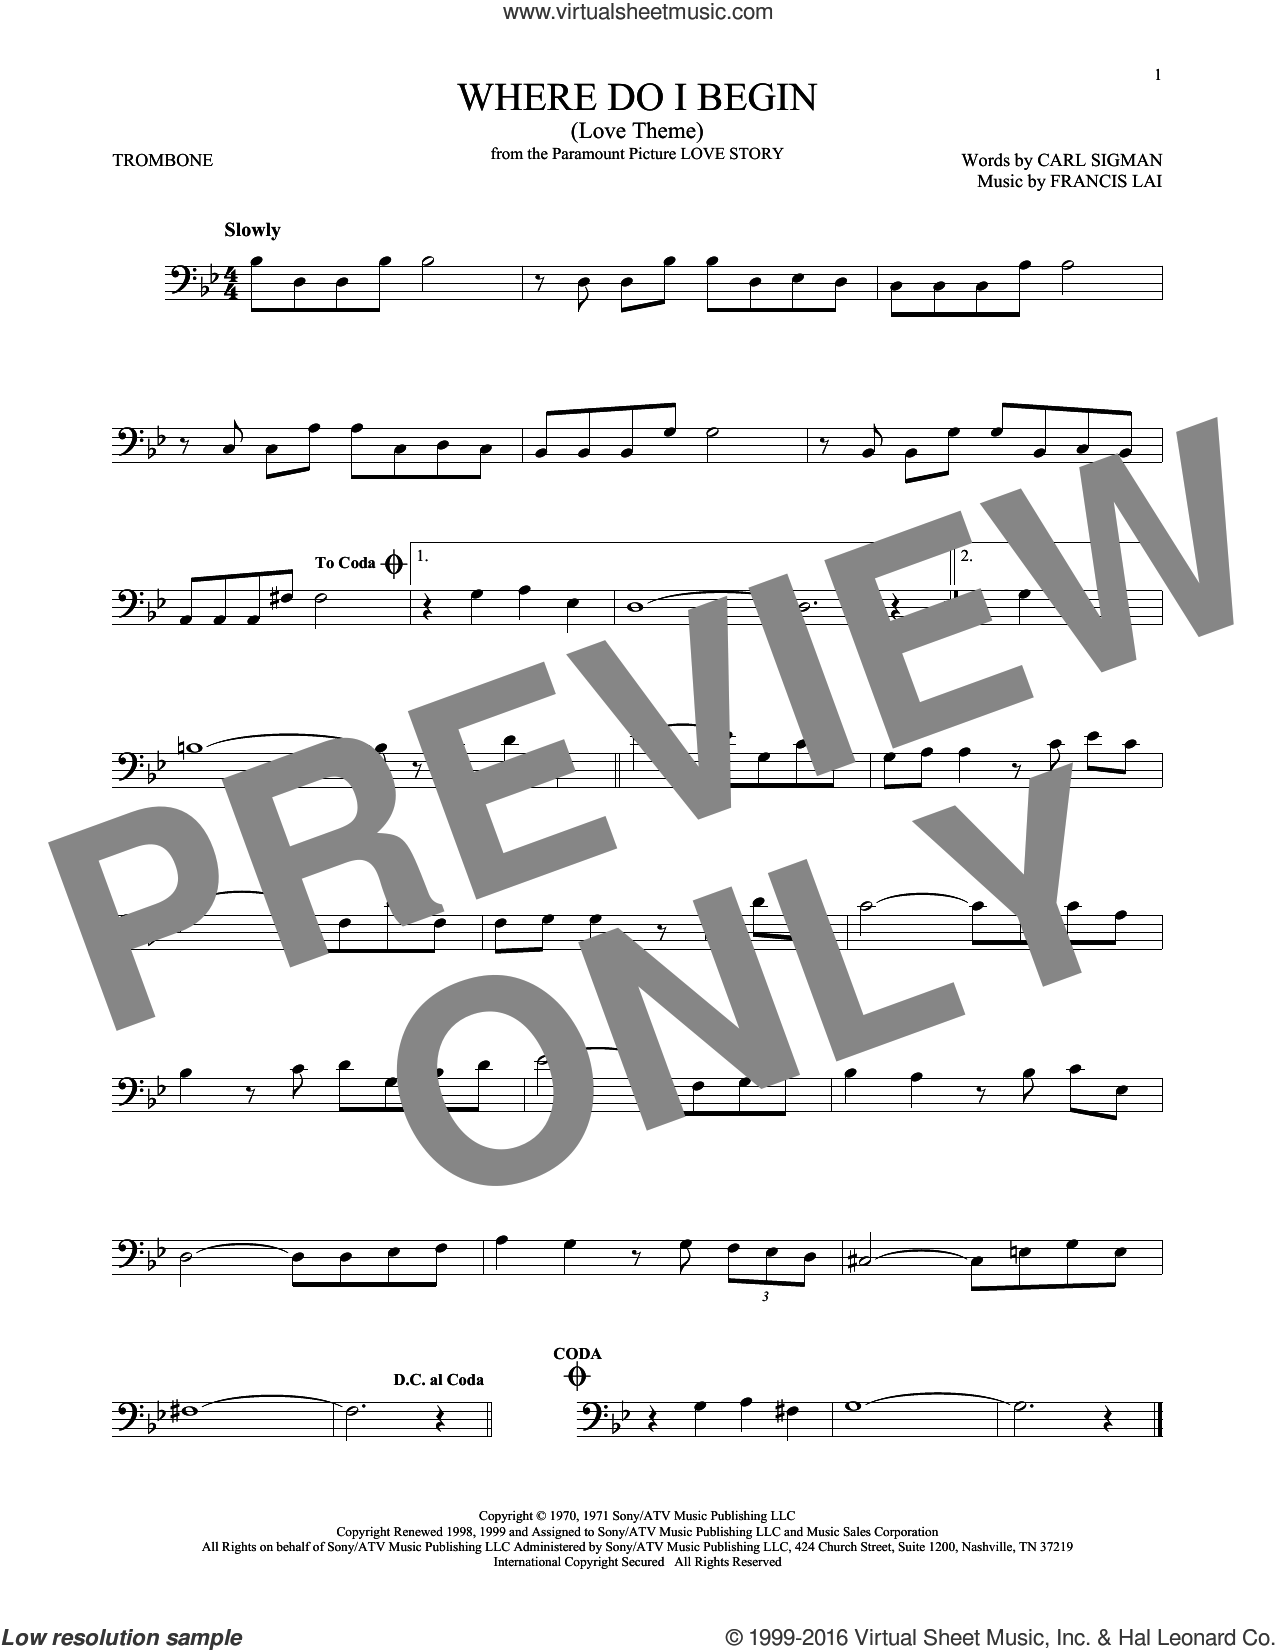 Where Do I Begin (Love Theme) sheet music for trombone solo by Francis Lai, Andy Williams and Carl Sigman. Score Image Preview.